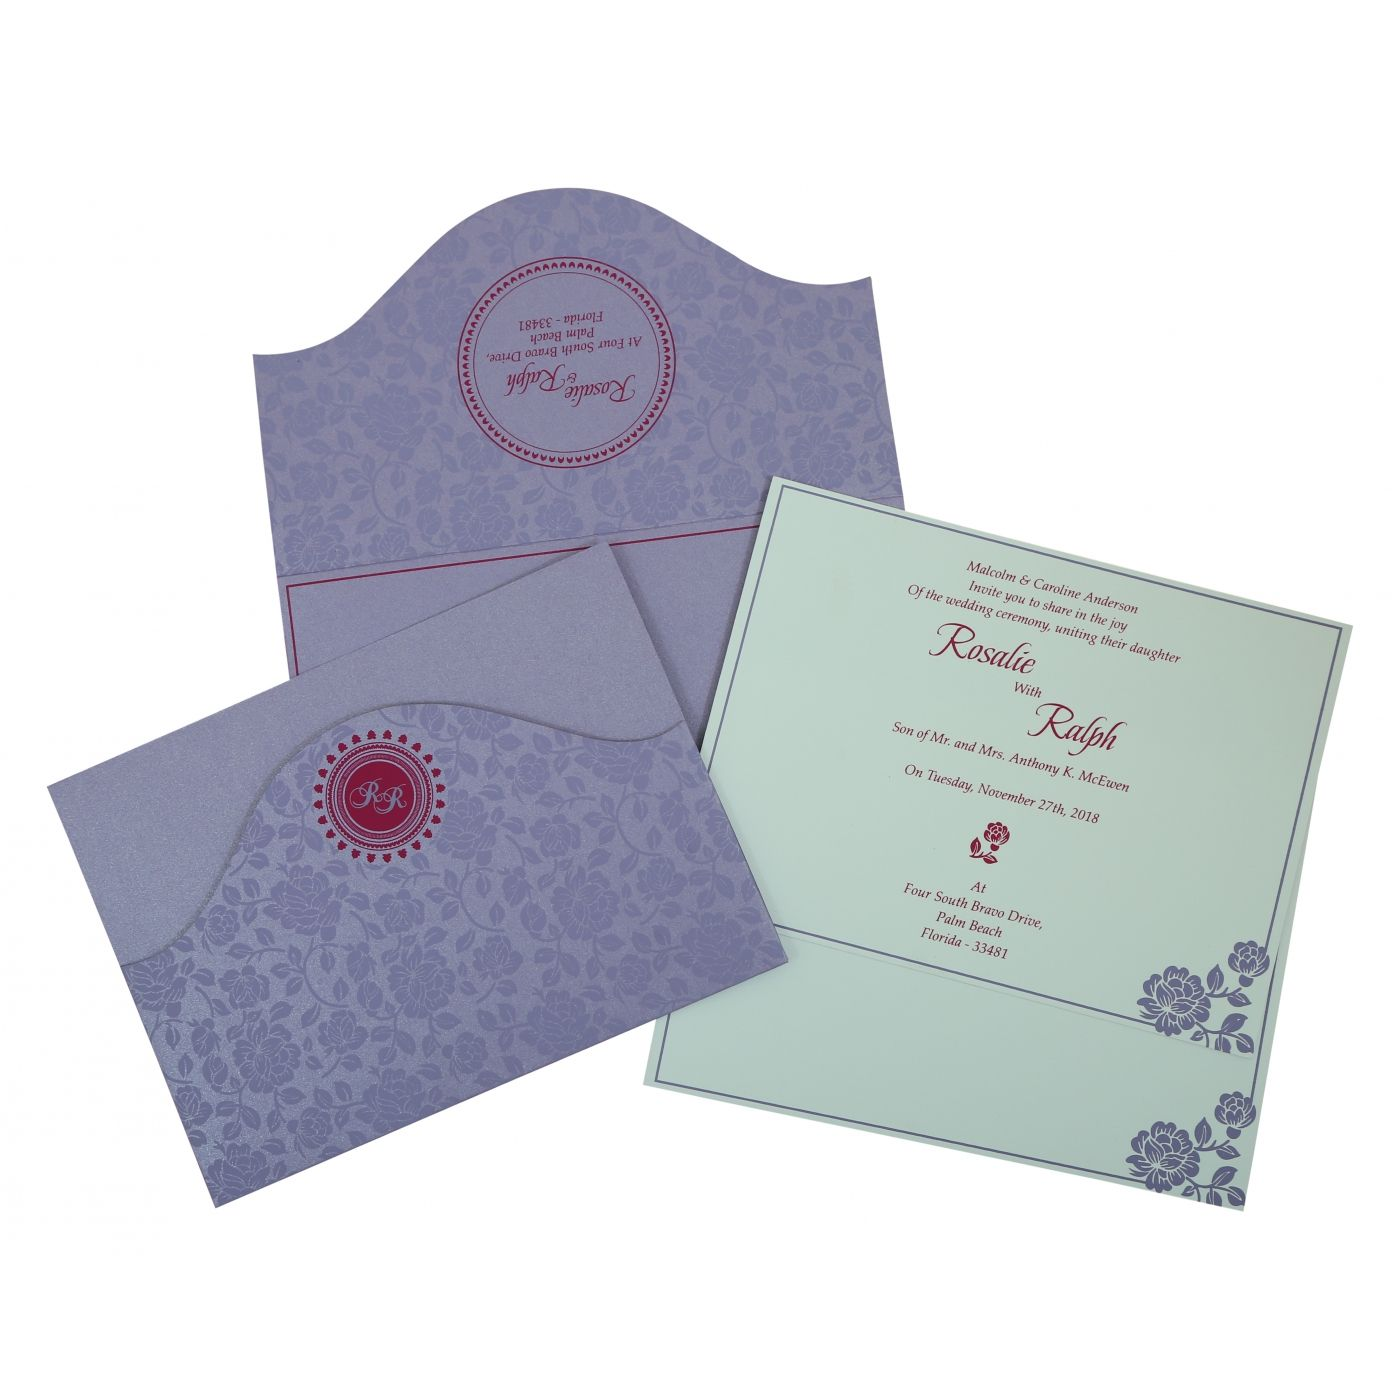 LAVENDER PURPLE SHIMMERY FLORAL THEMED - SCREEN PRINTED WEDDING INVITATION : CG-802B - IndianWeddingCards